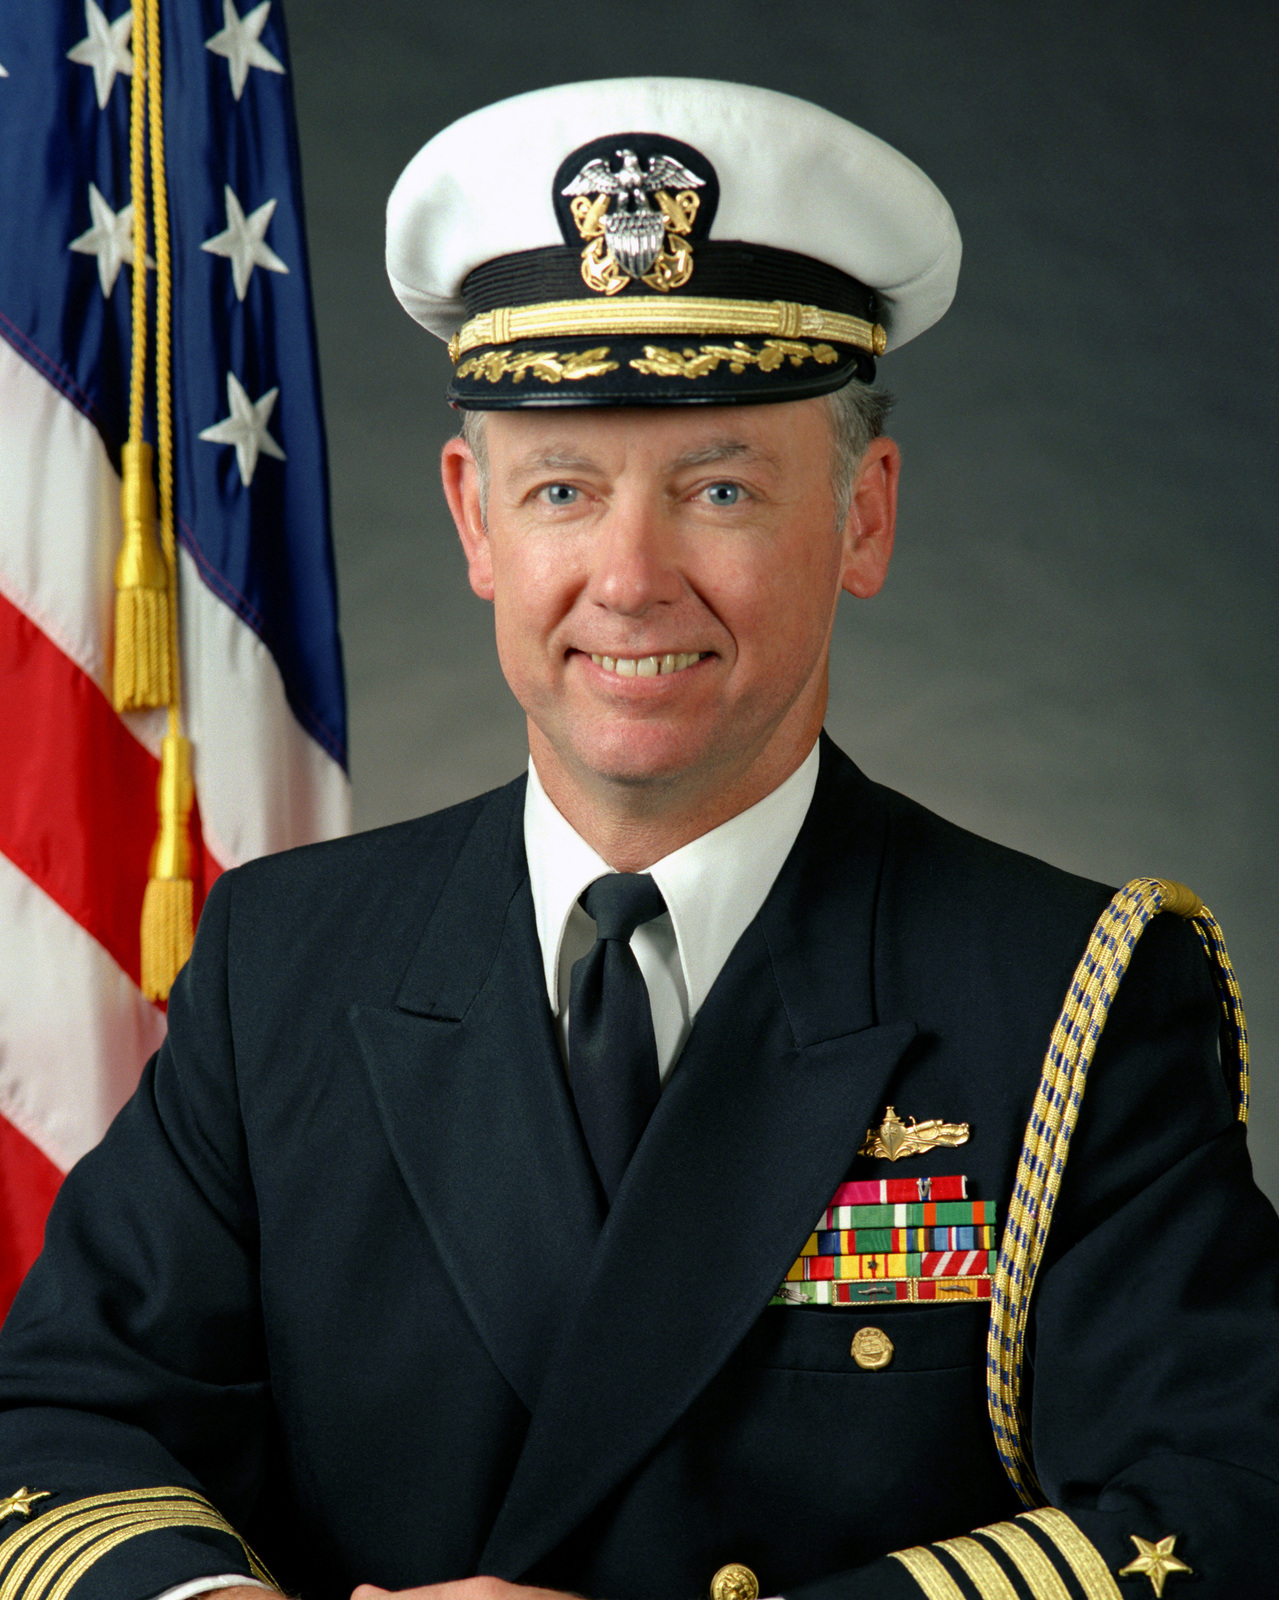 Captain Roland T.E. Bowler USN (covered)